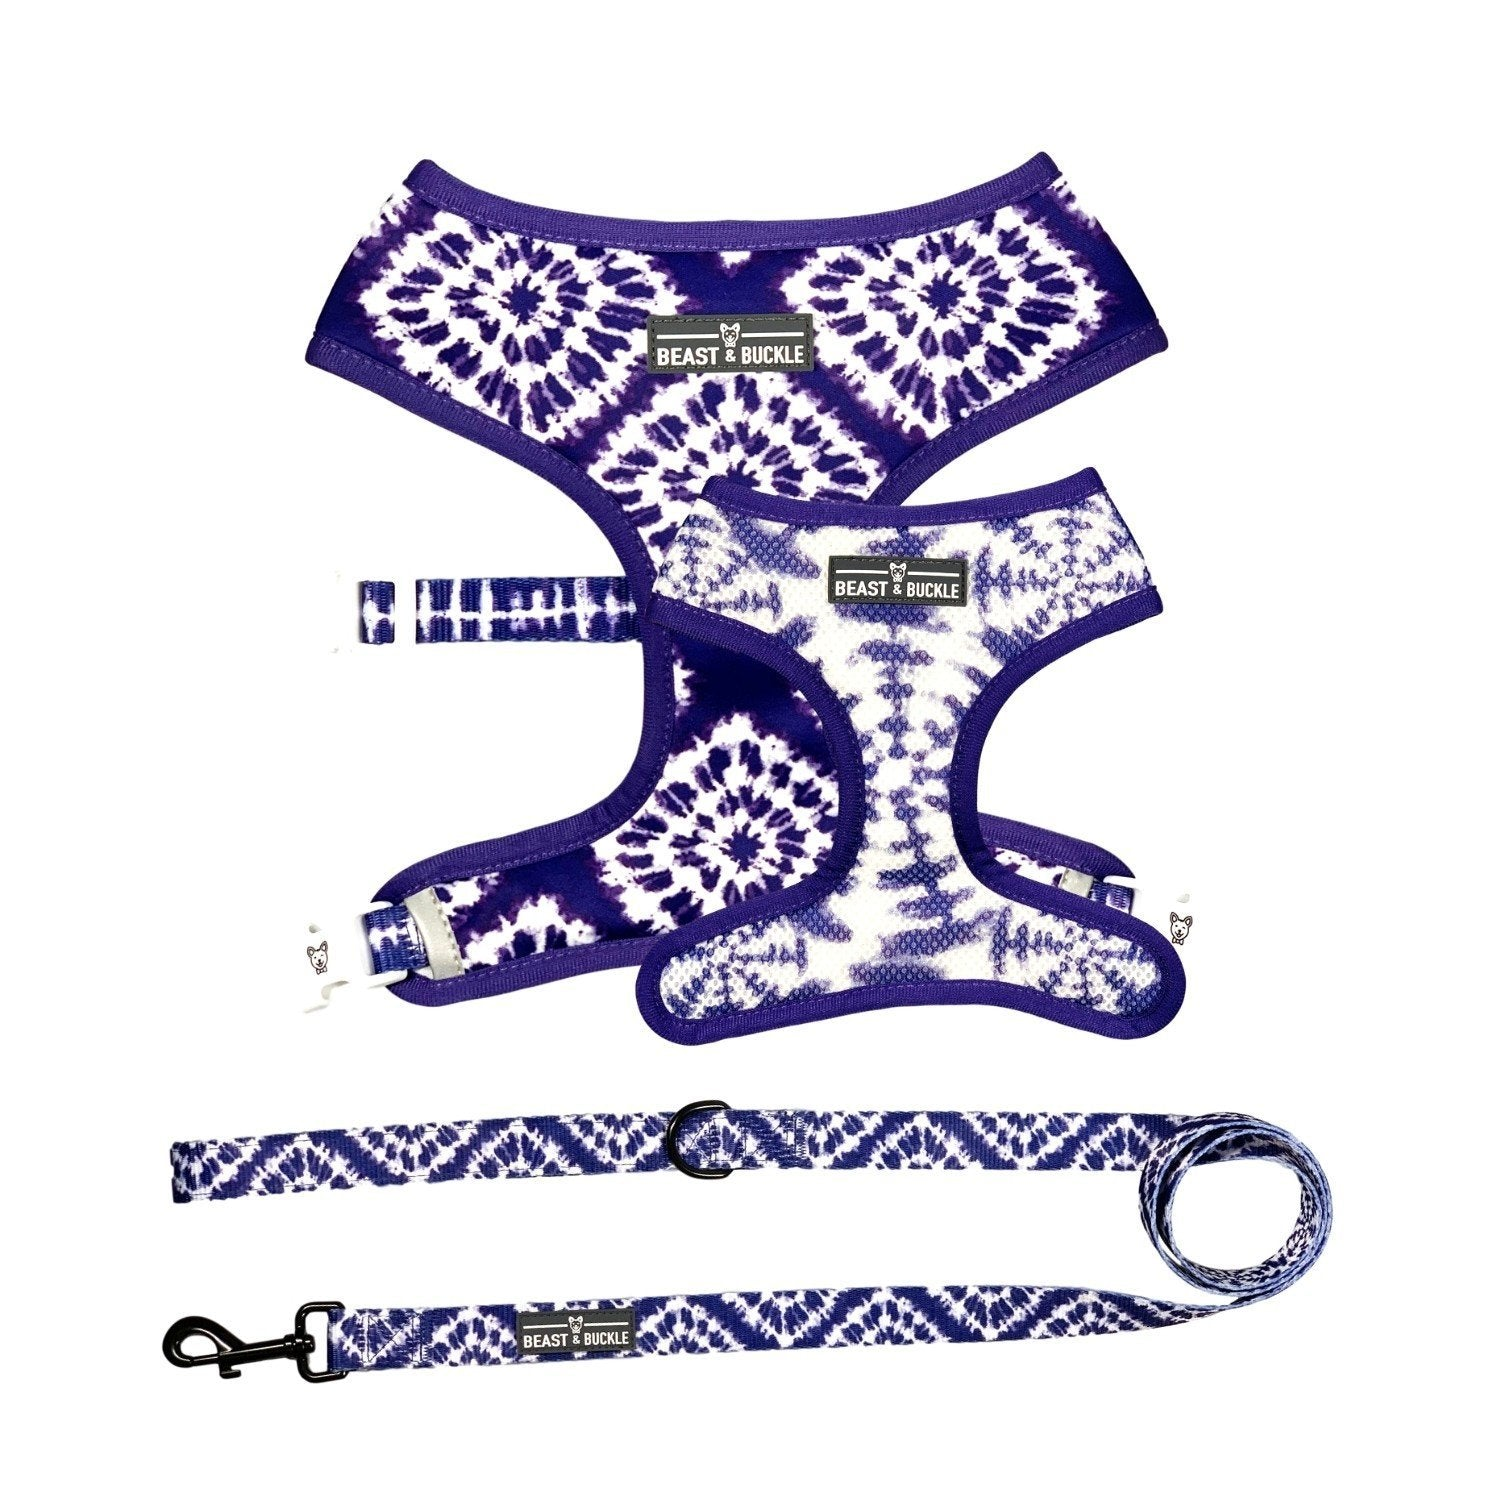 Shibori Tie Dye Harness and Leash Set - Beast & Buckle